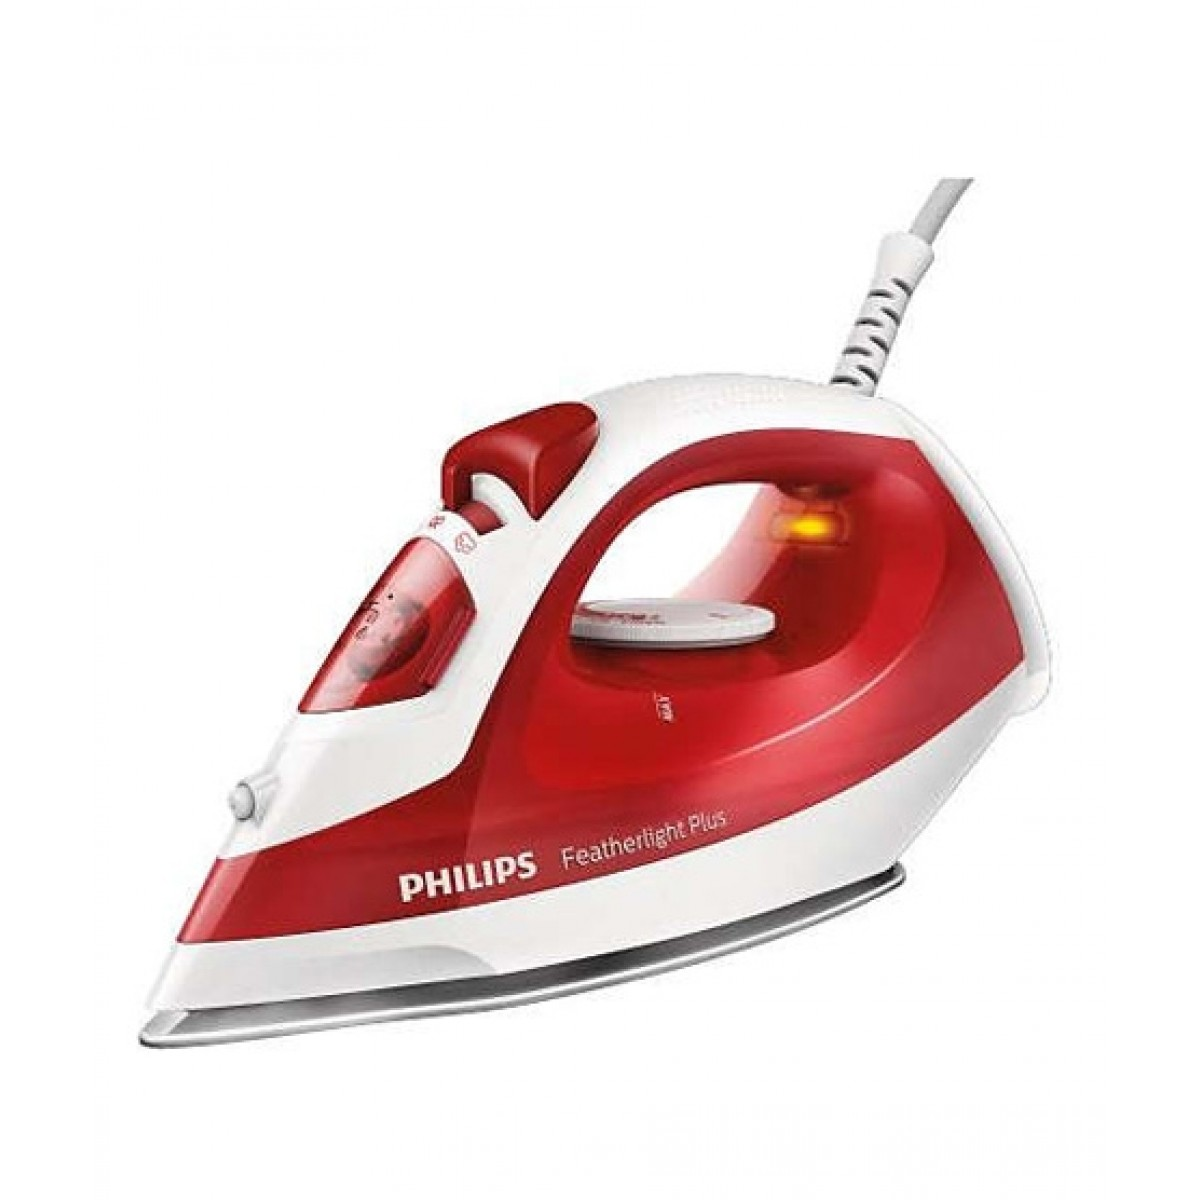 Philips FeatherLight Plus Steam Iron (GC1426/49)